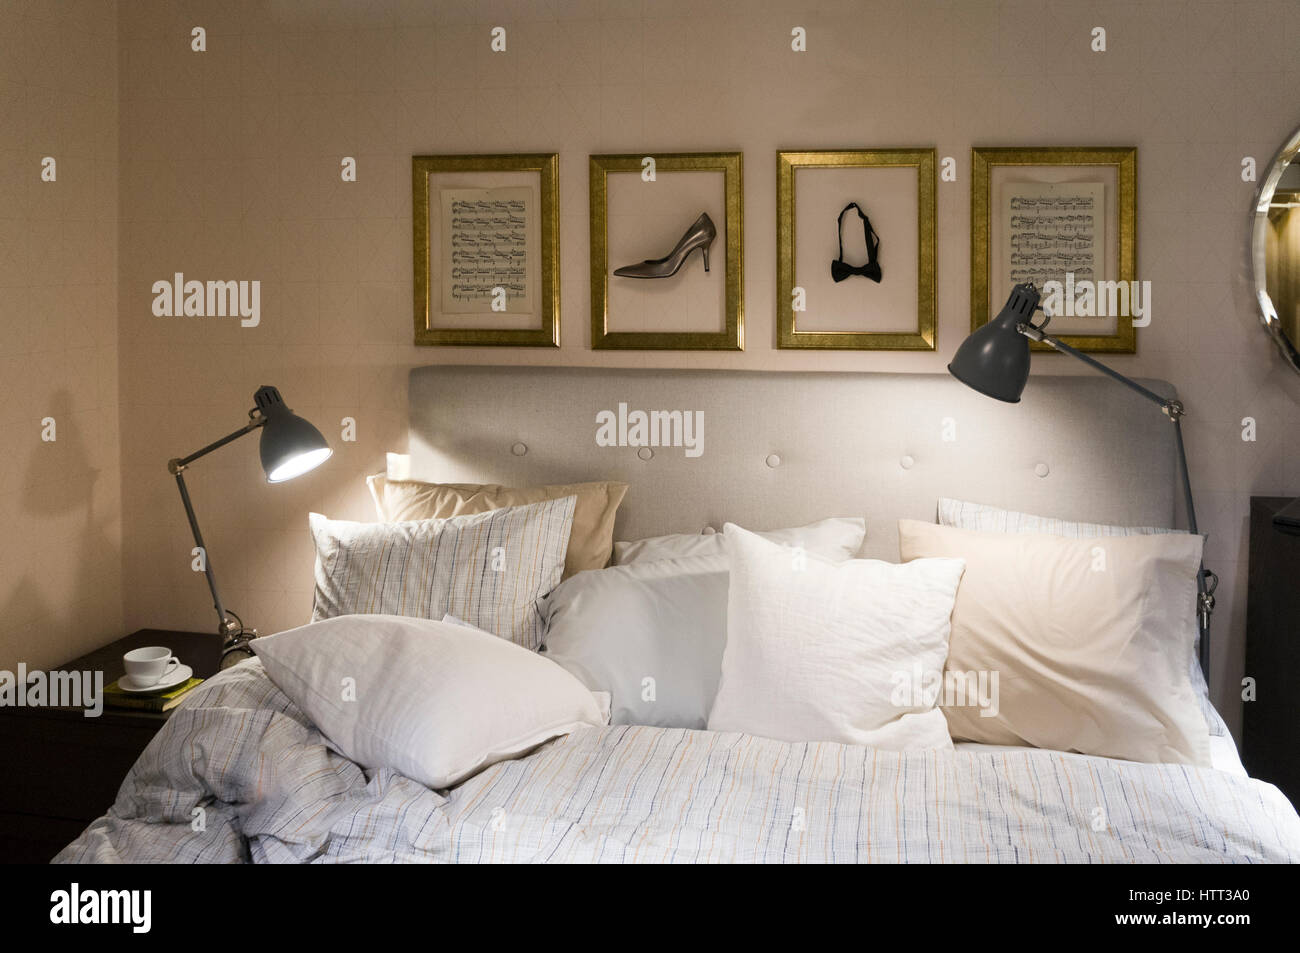 Cosy comfortable modern bedroom and bed  Model Release: No.  Property Release: No. - Stock Image